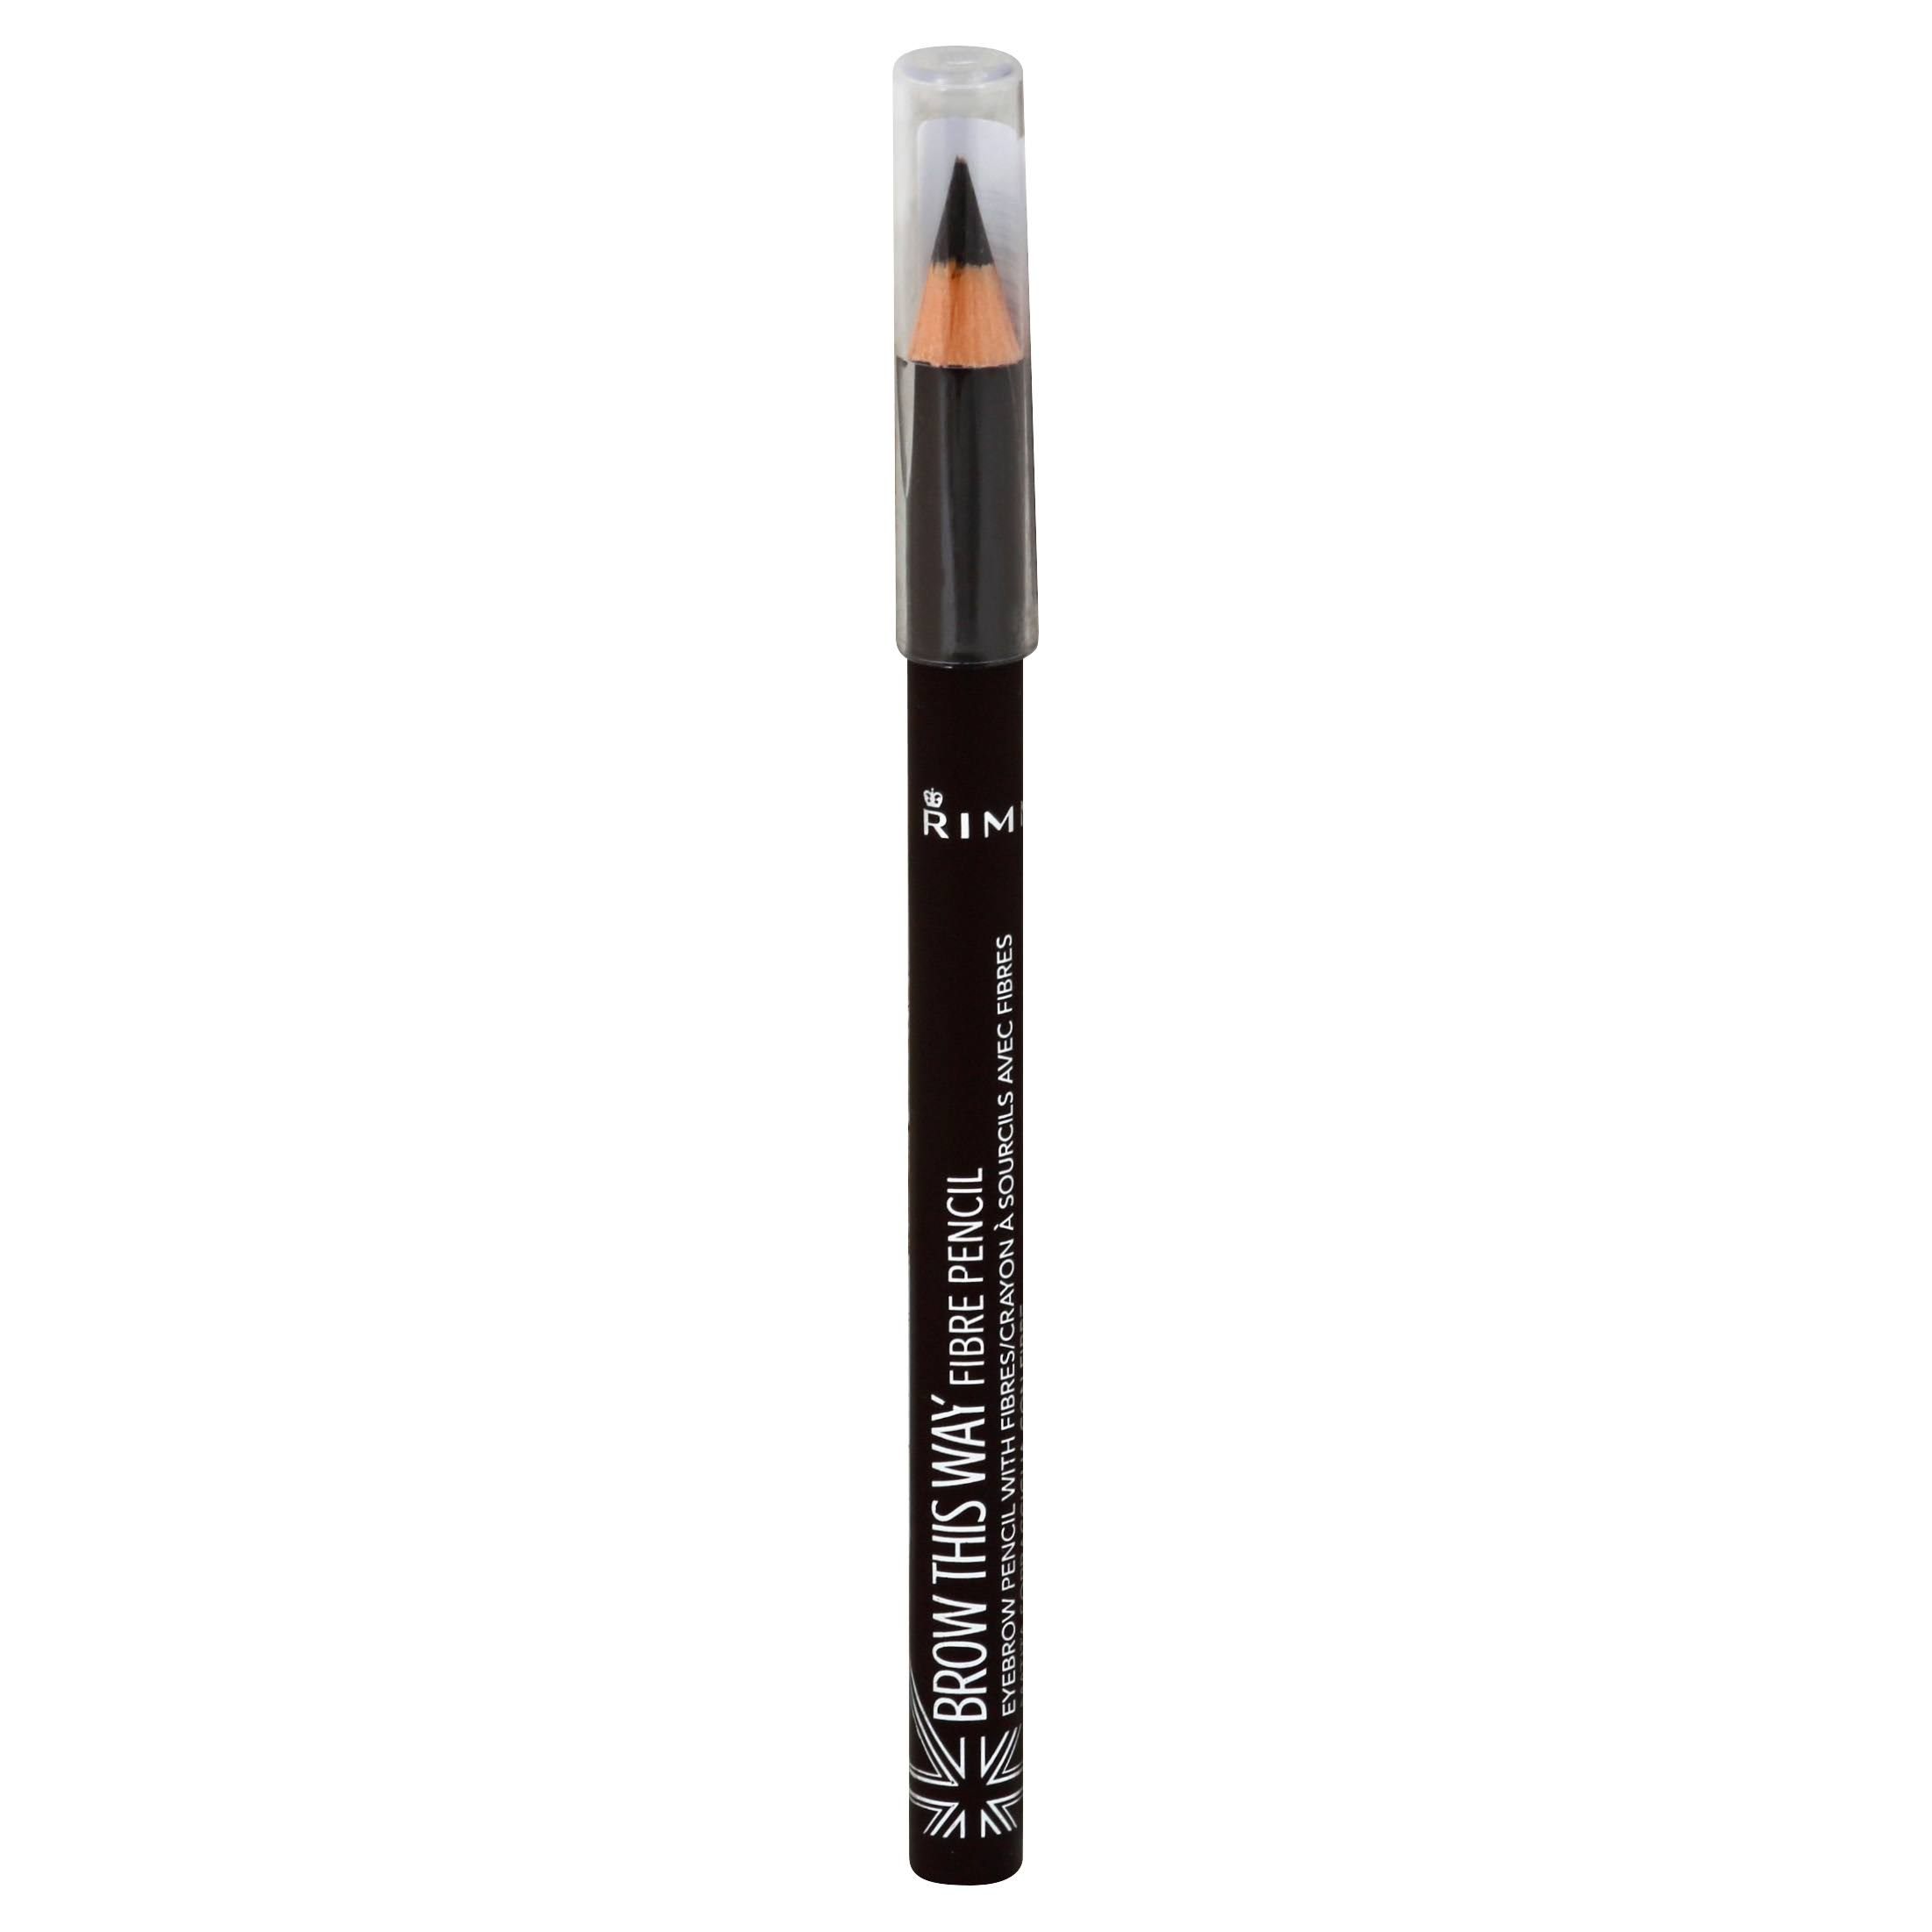 Rimmel London Brow This Way Fibre Pencil - 003 Dark, 1.08g